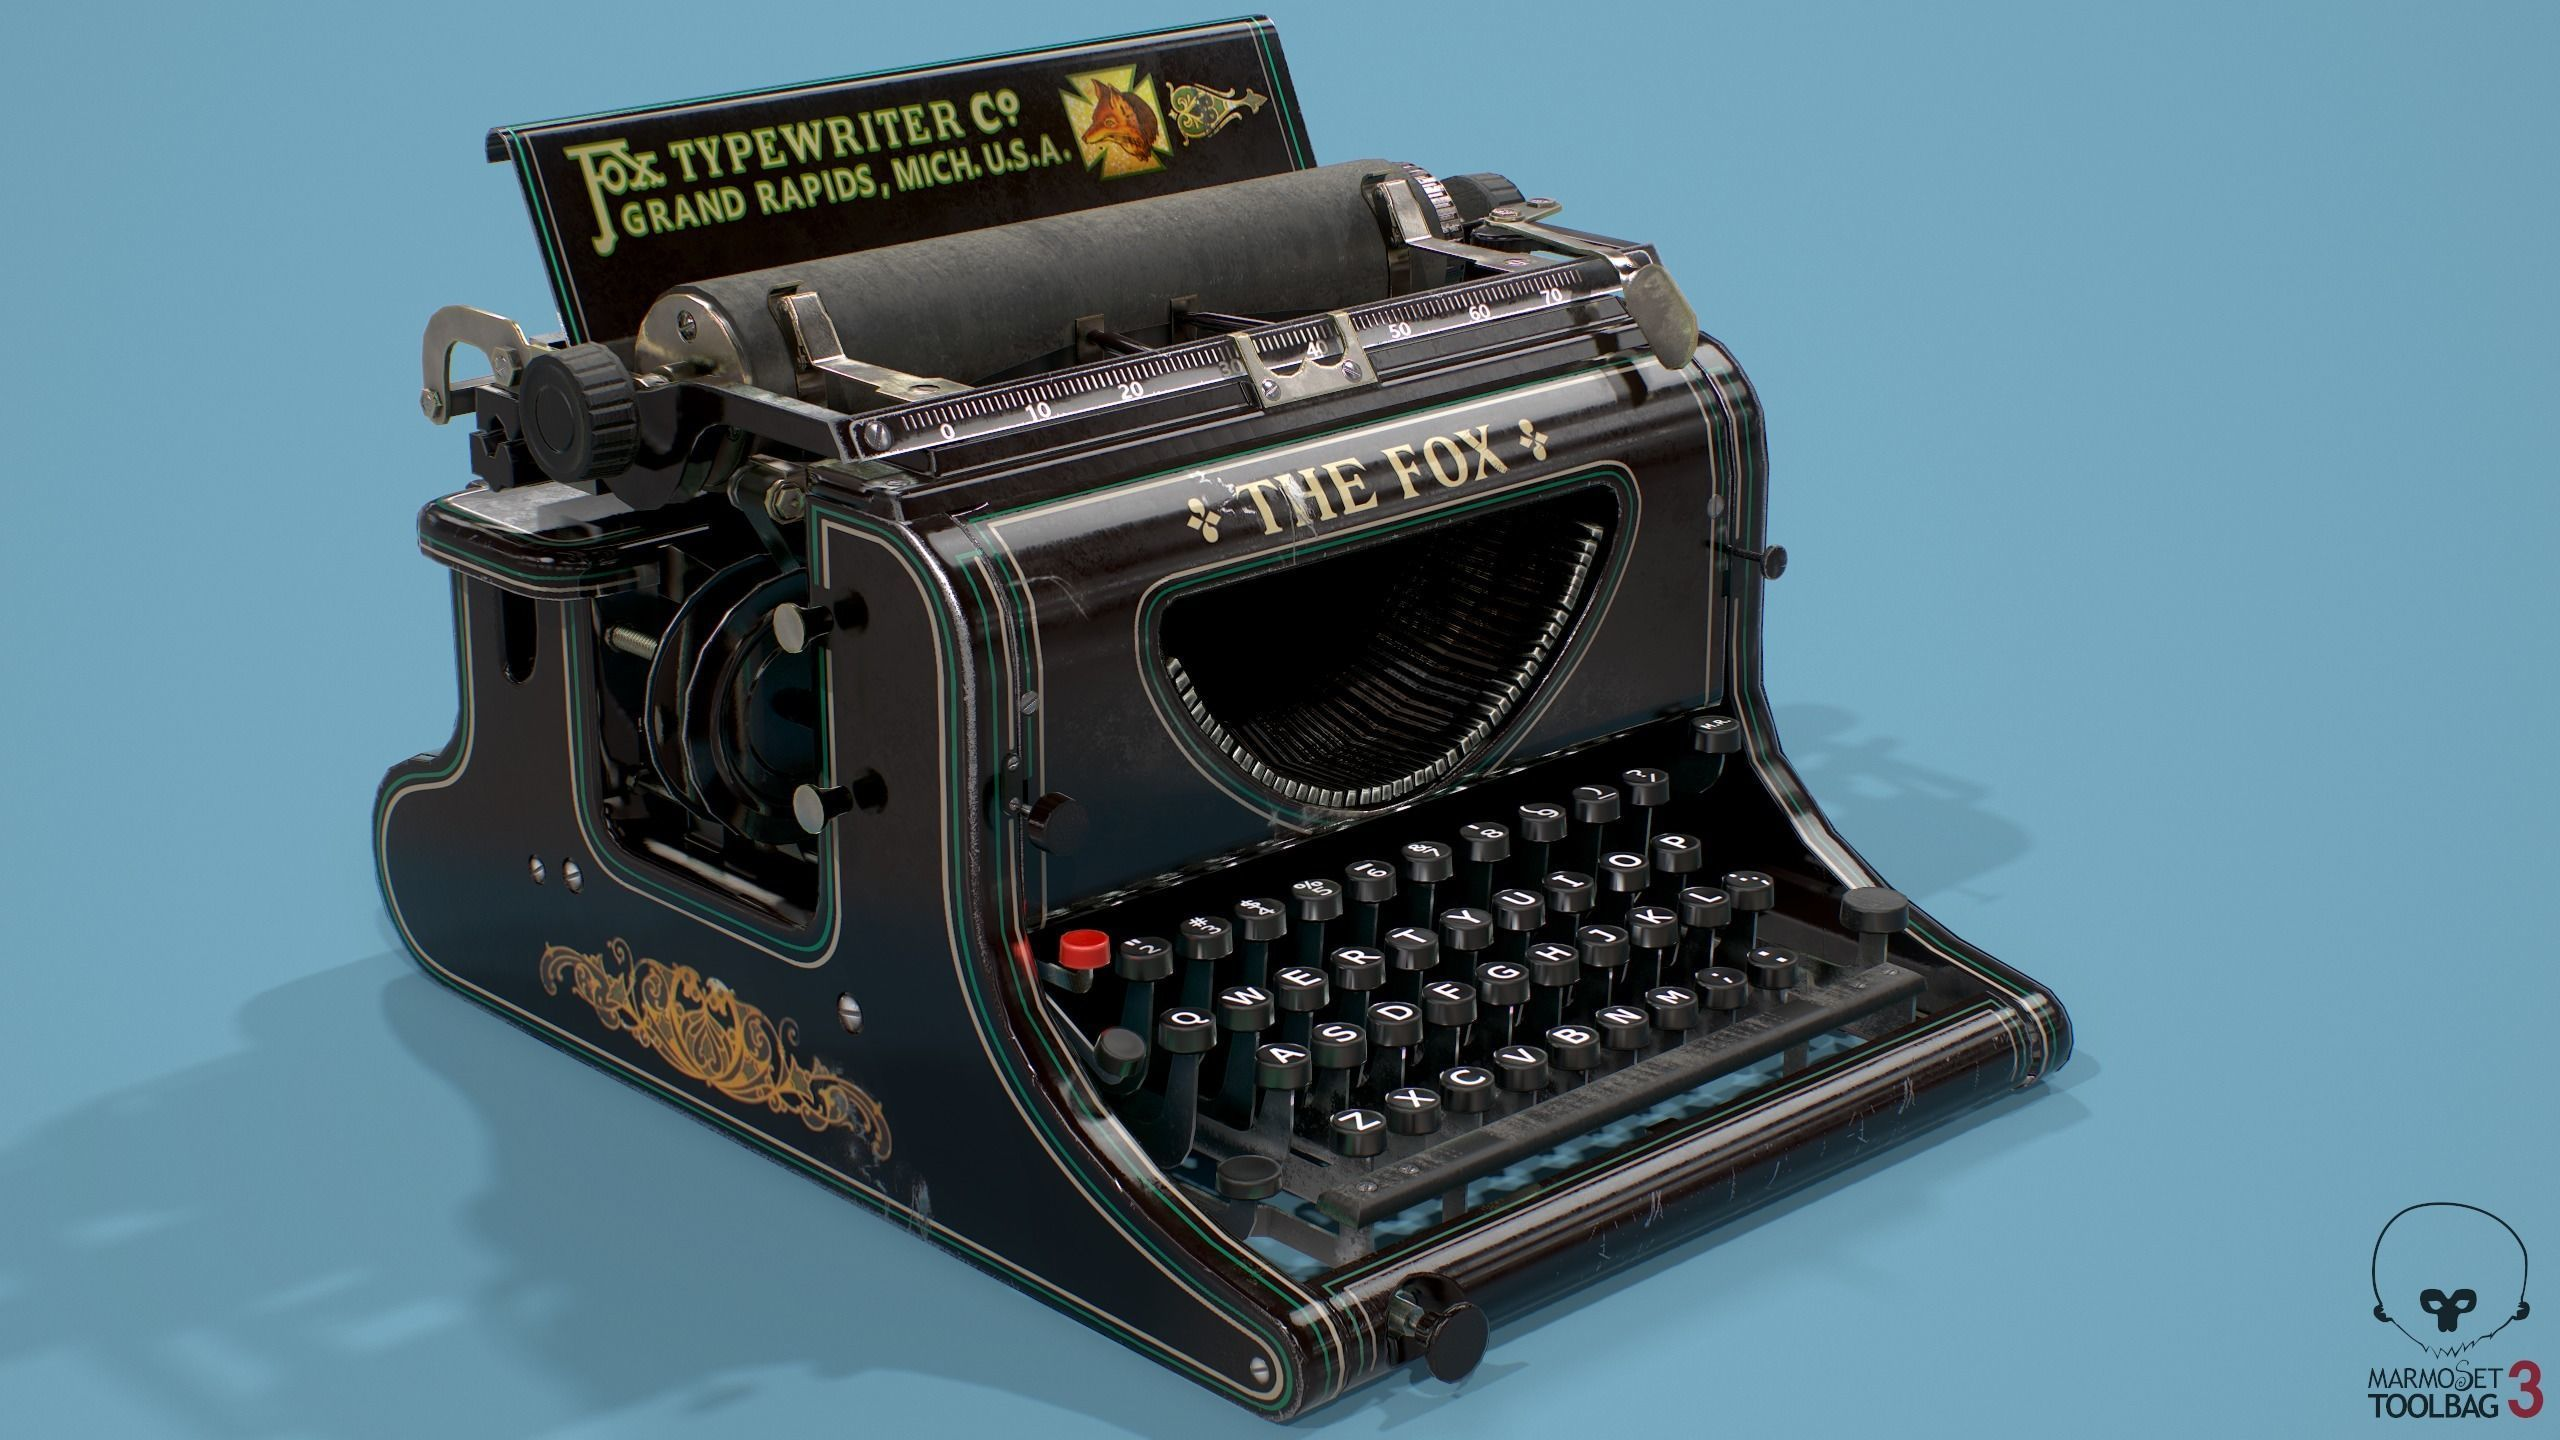 Typewriter Fox Low poly 3D model